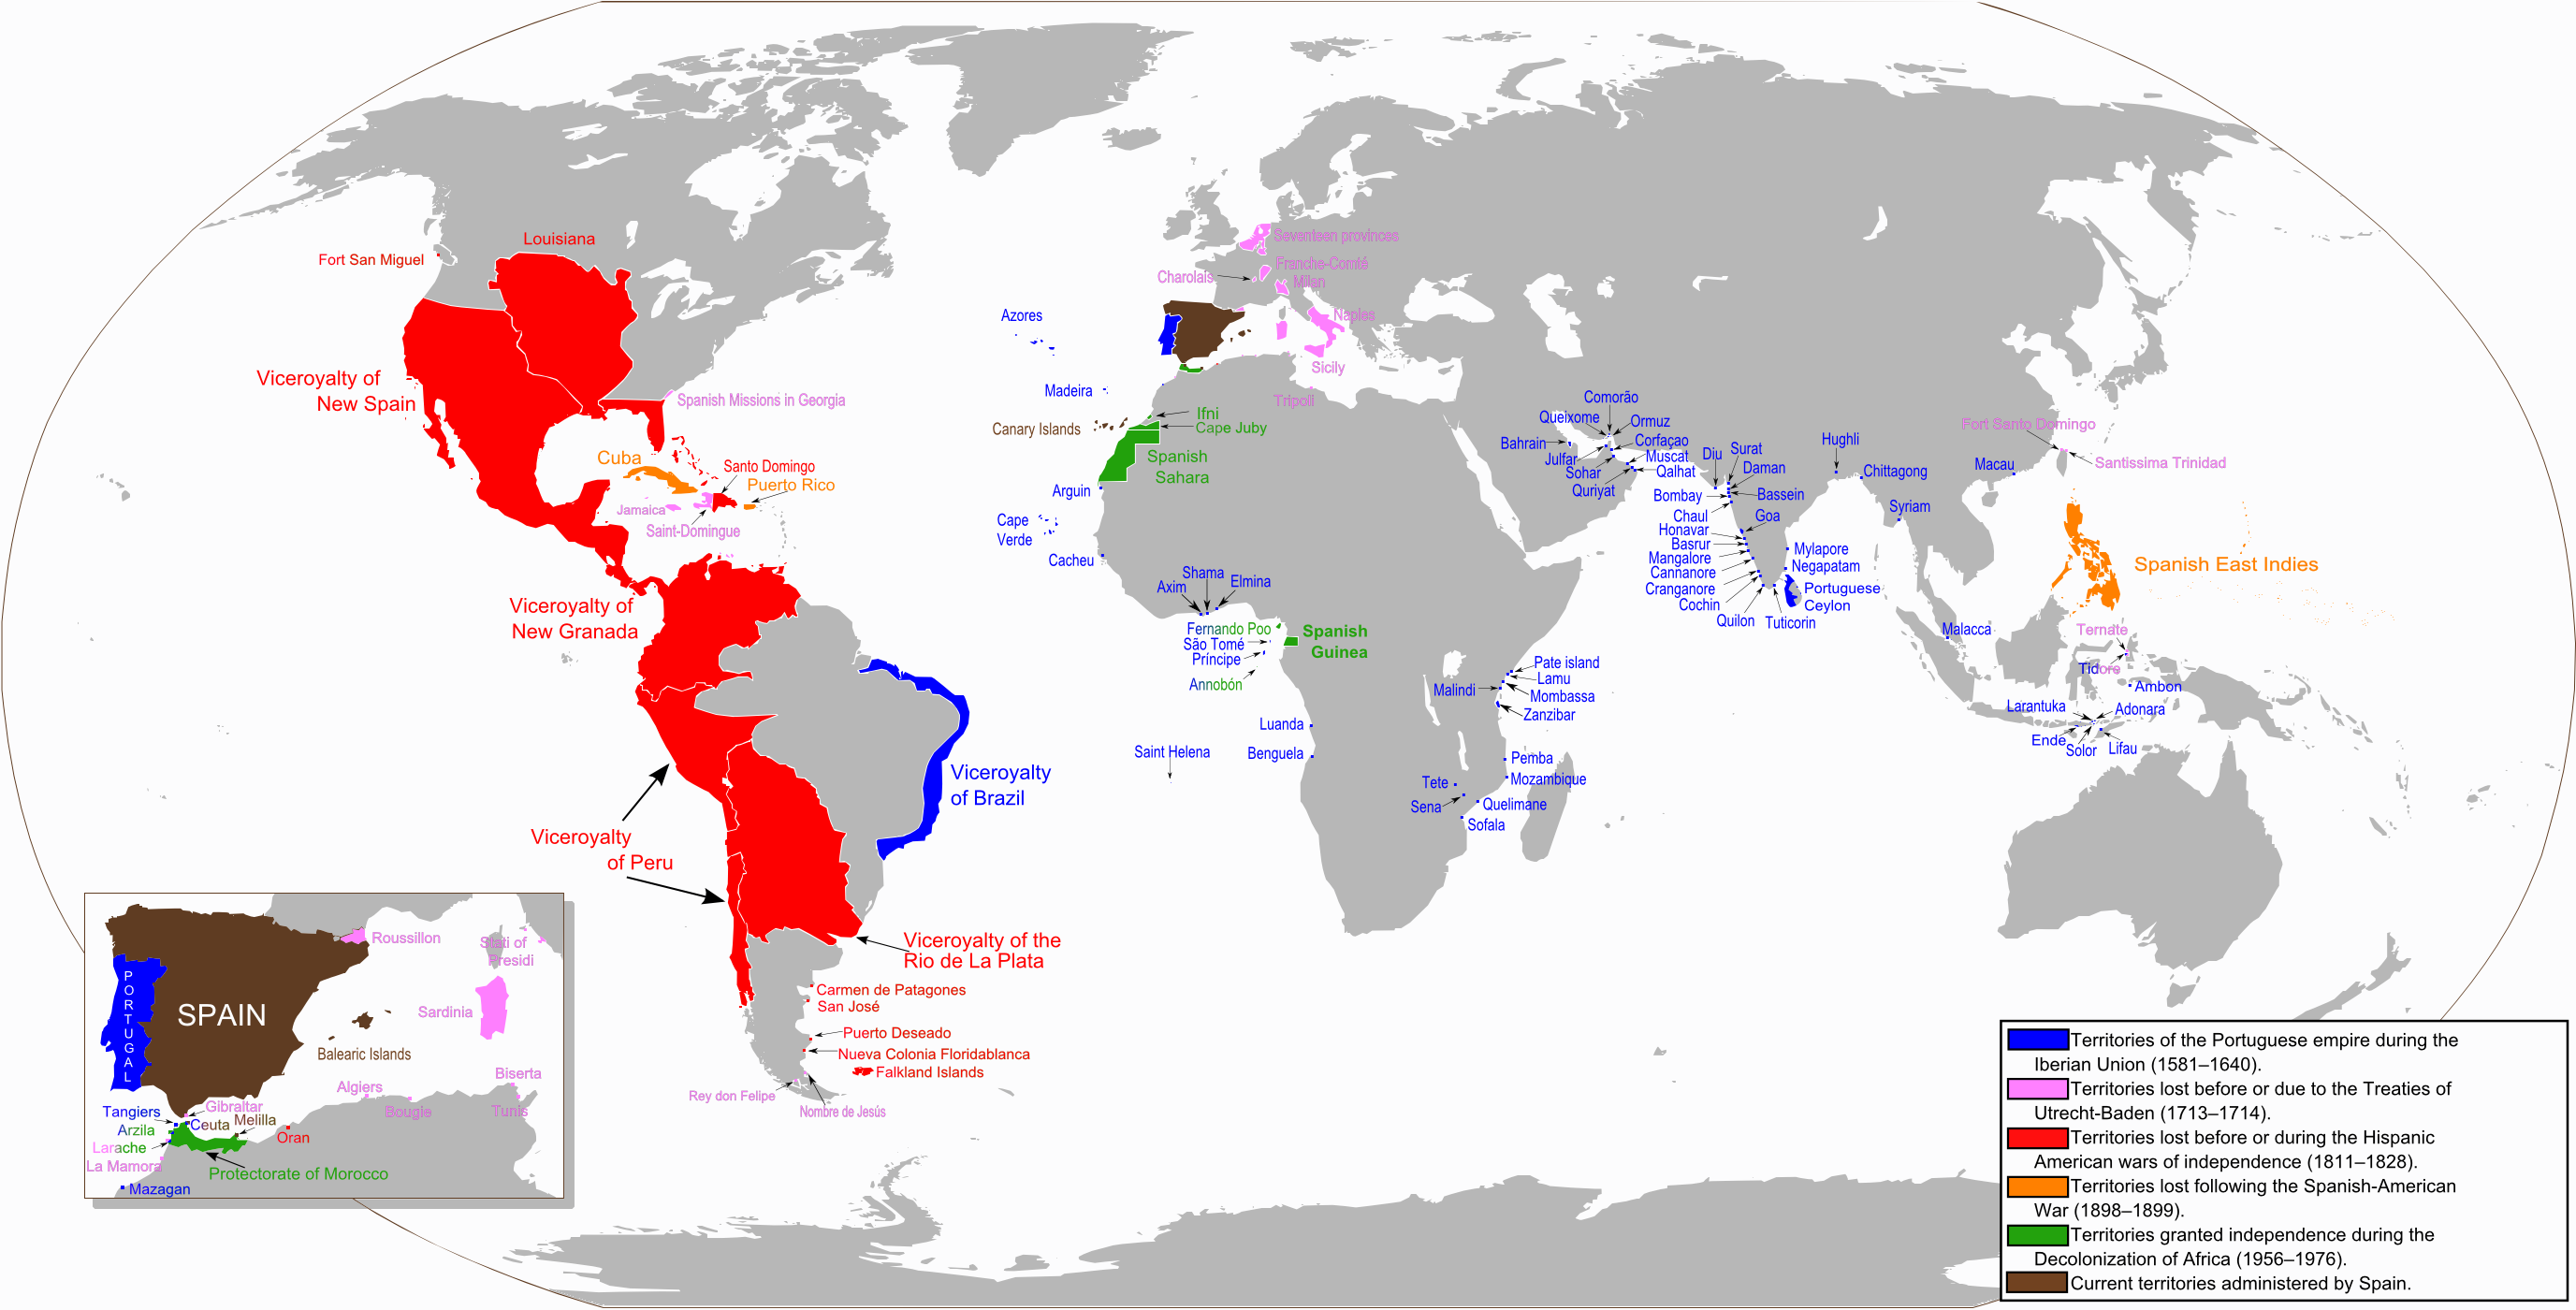 Anachronous map of the Spanish Empire